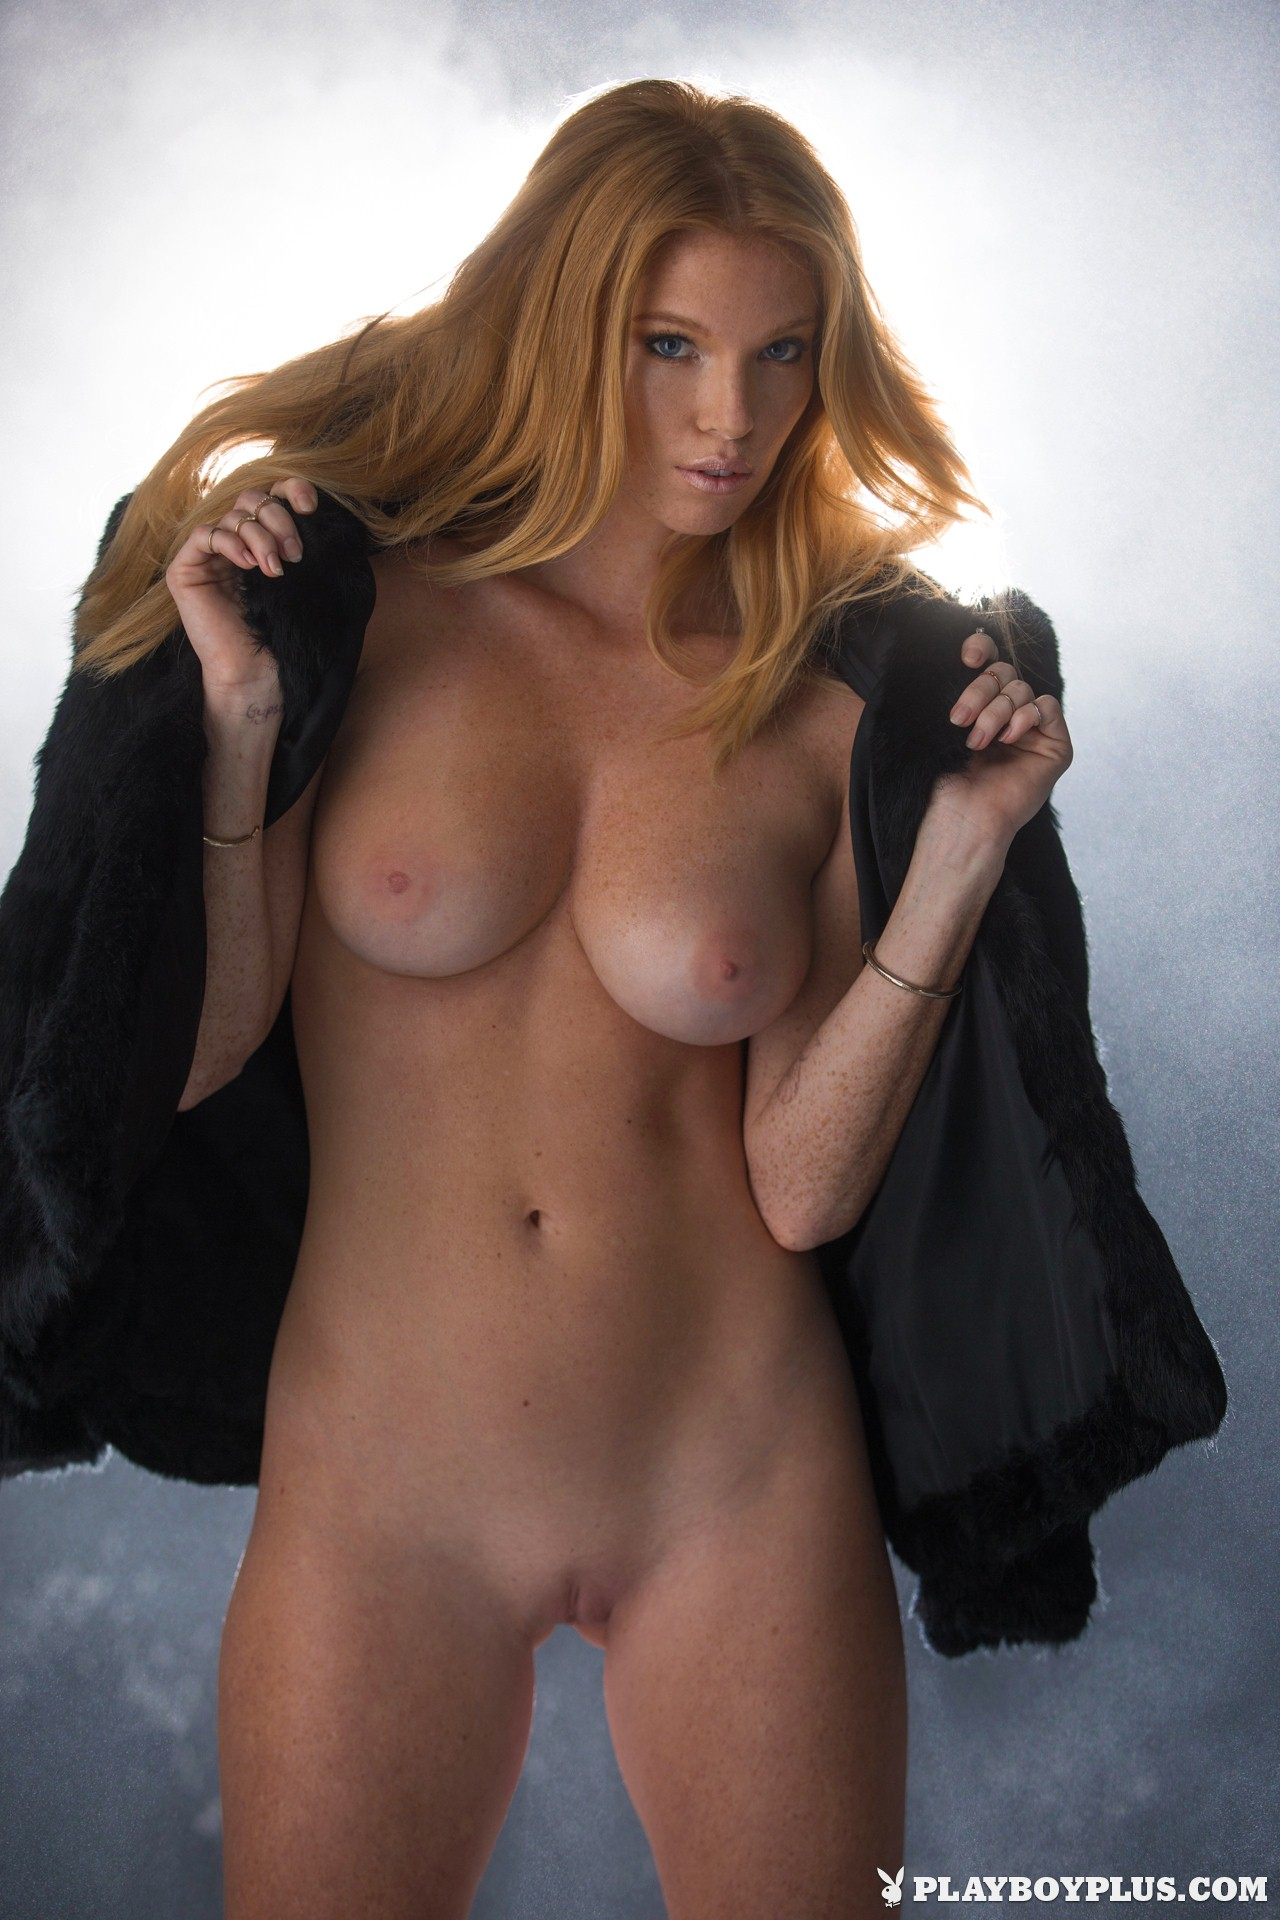 Are Eliza beth sex pussy nude opinion